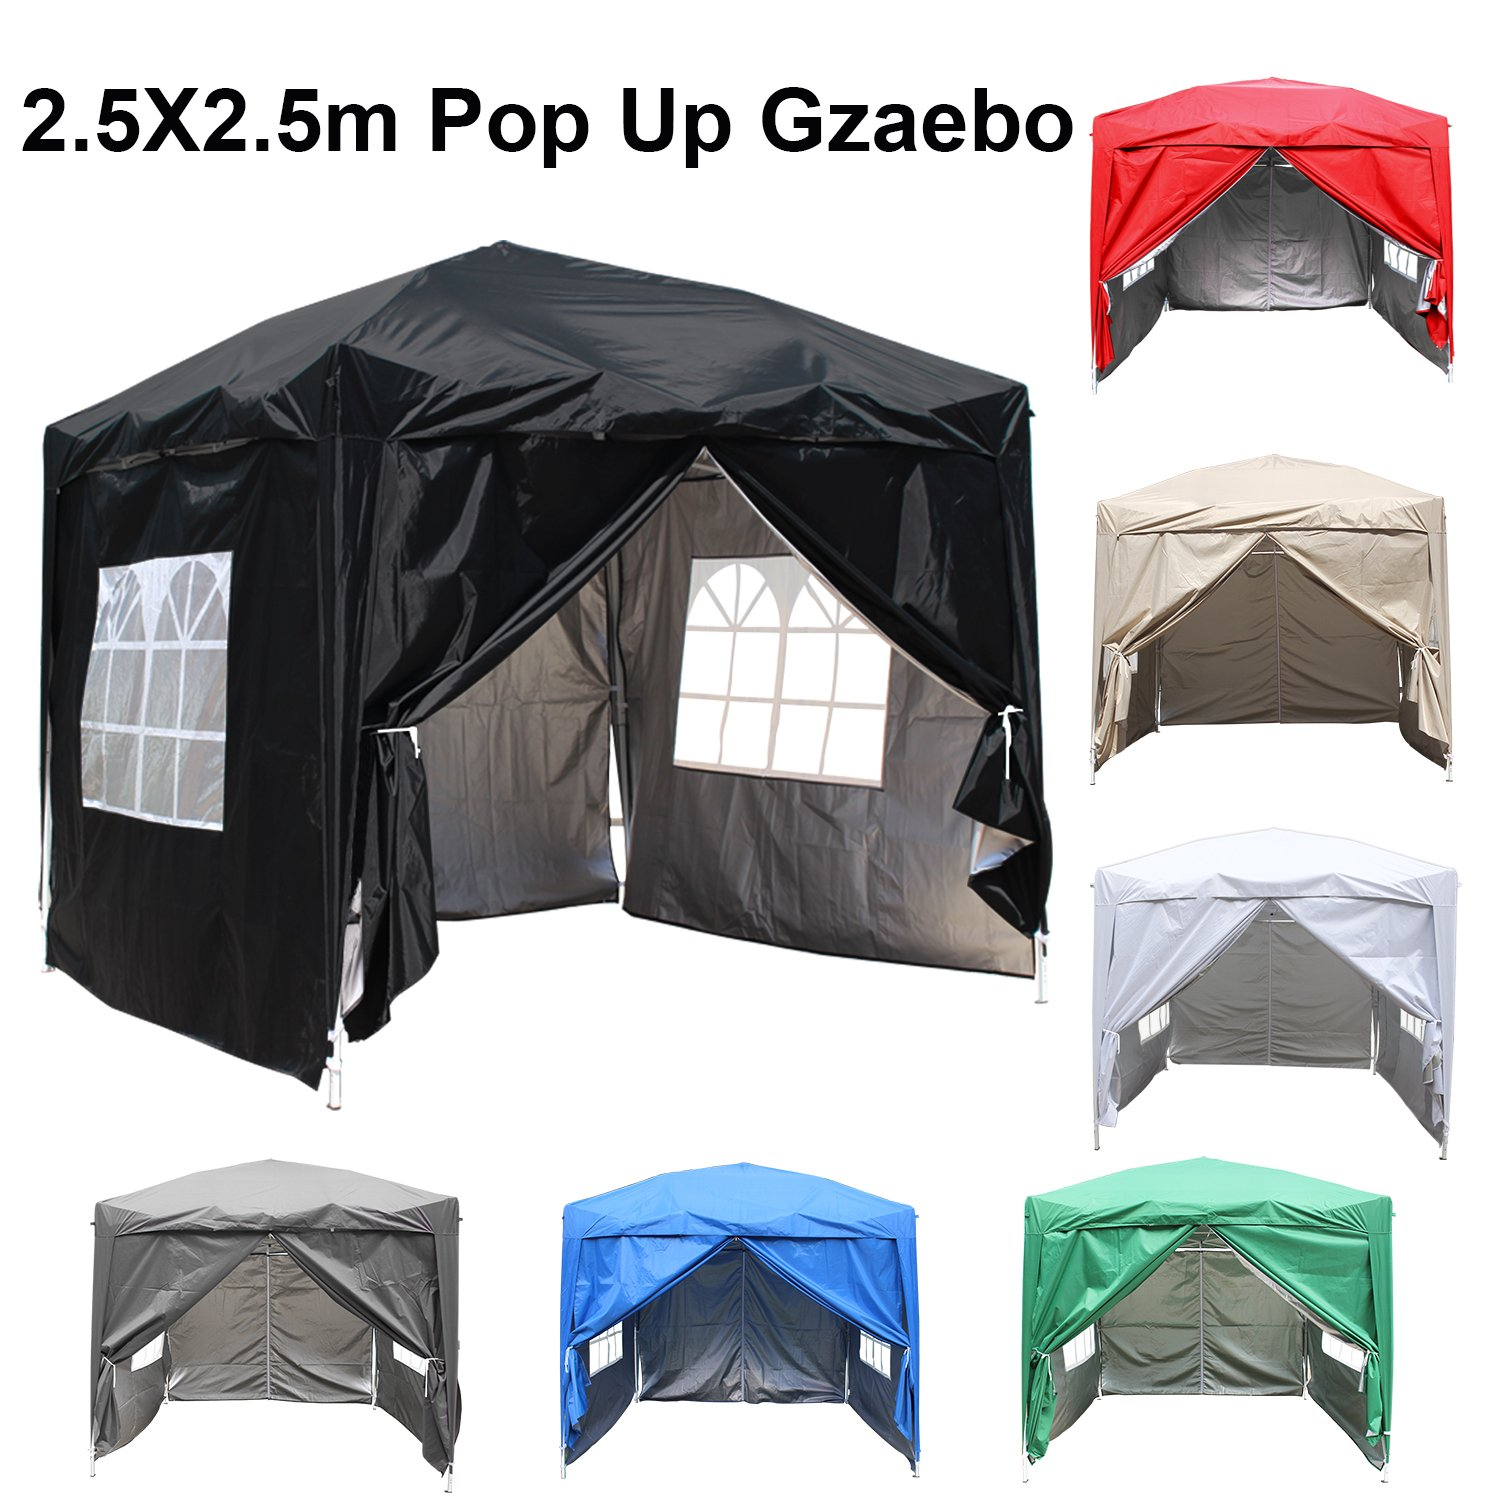 Greenbay 2.5M x 2.5M Foldable Pop up Gazebo Sun Protection Event Outdoor Tent With Four Side Panels (Two with Windows) - Black Manufactured for Greenbay